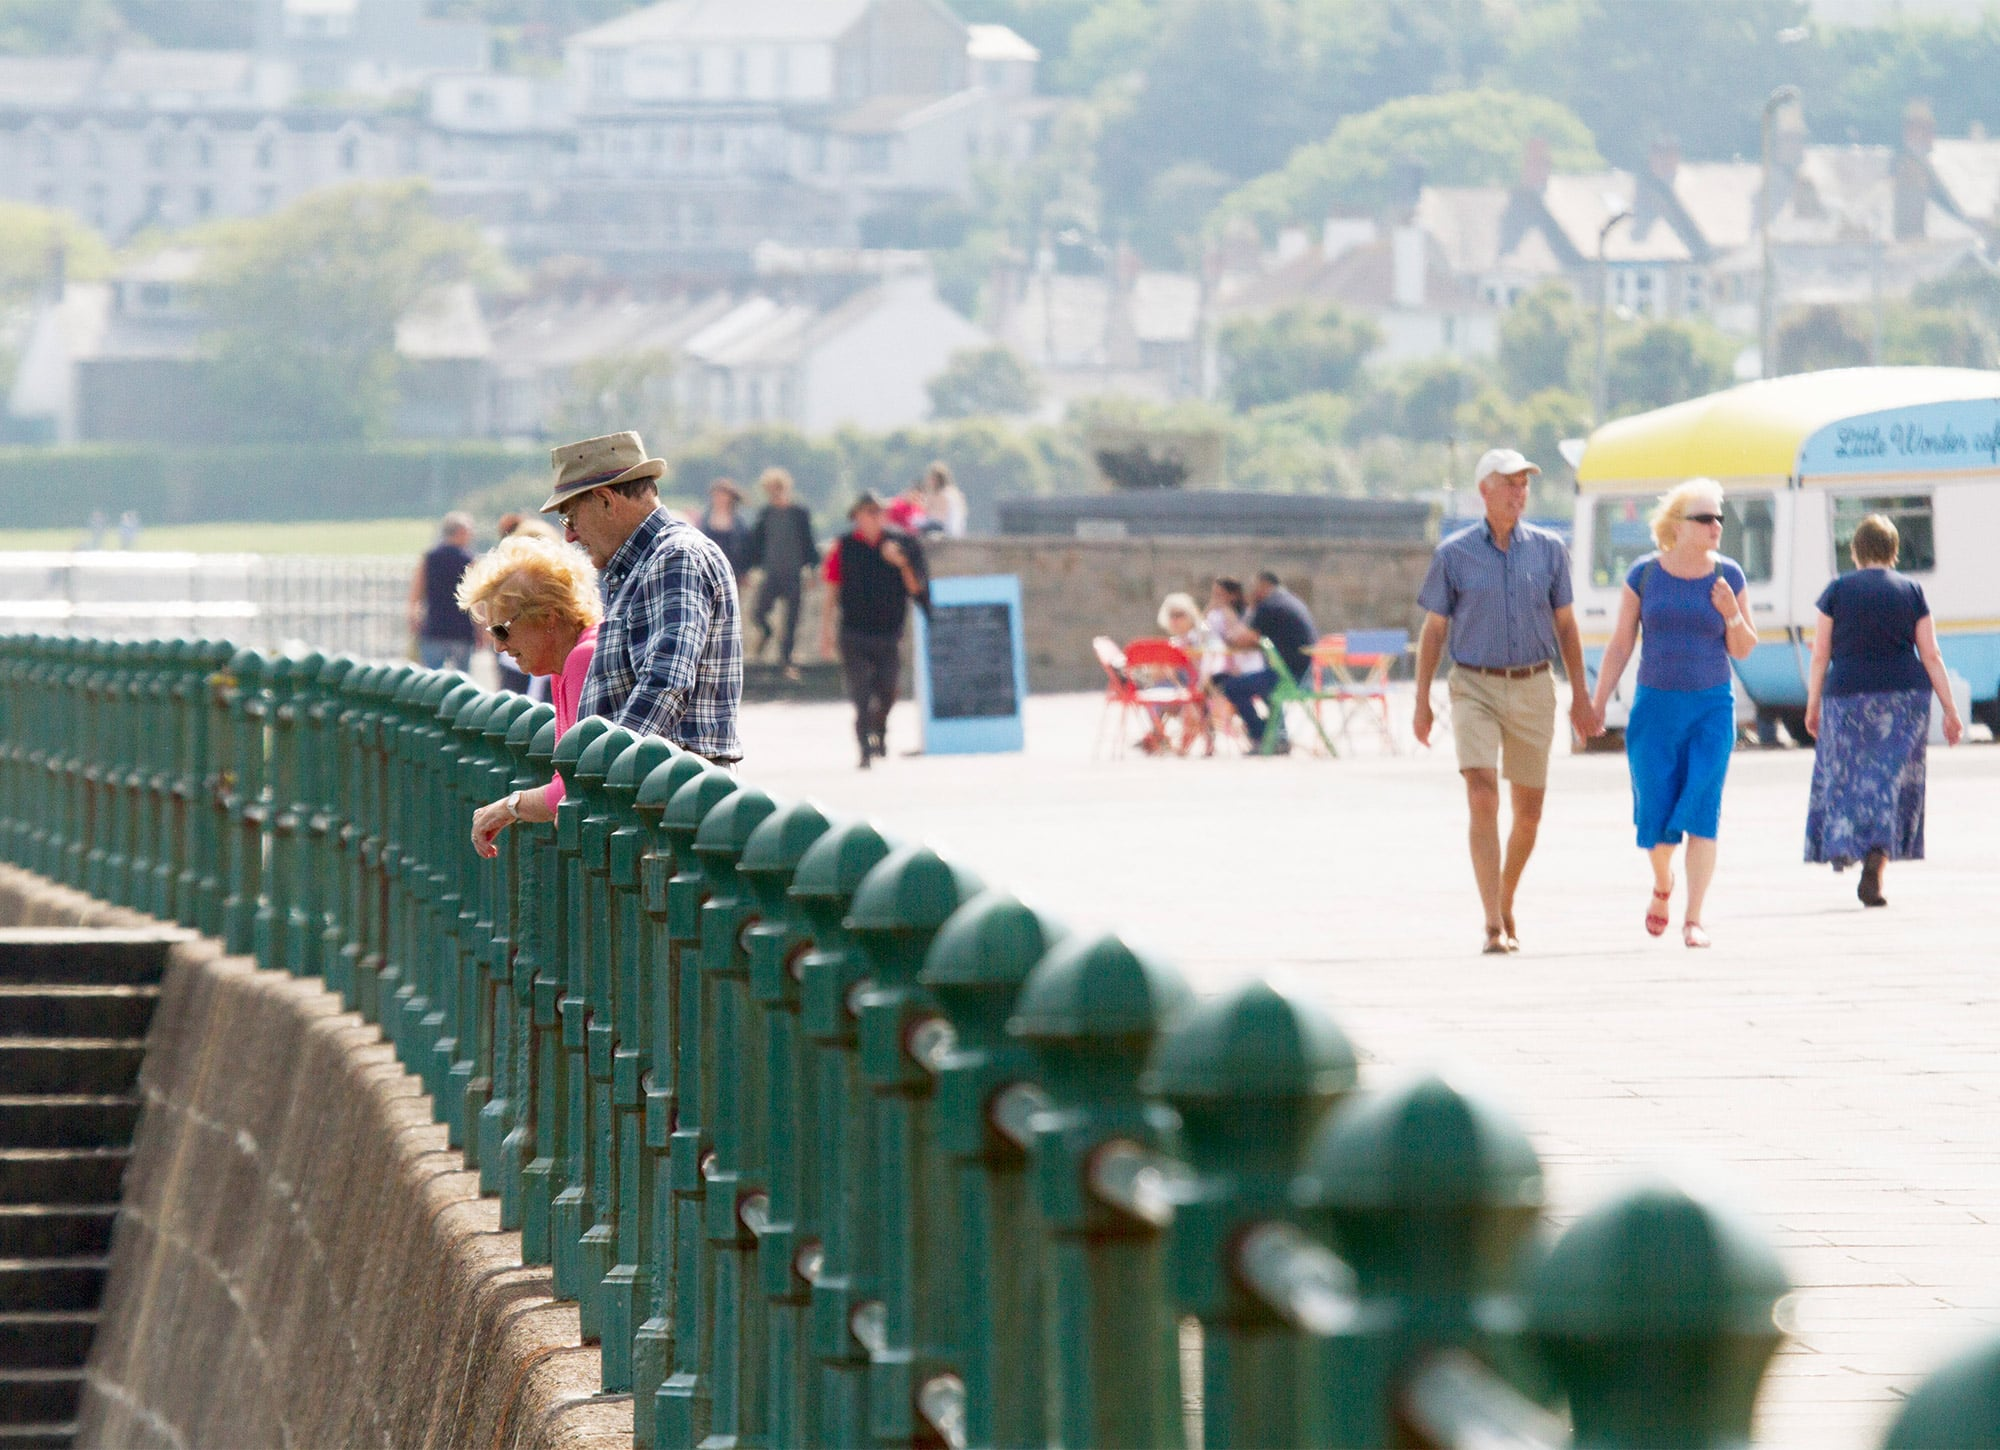 View of couple walking down the Penzance promenade with the Little Wonder cafe in the background